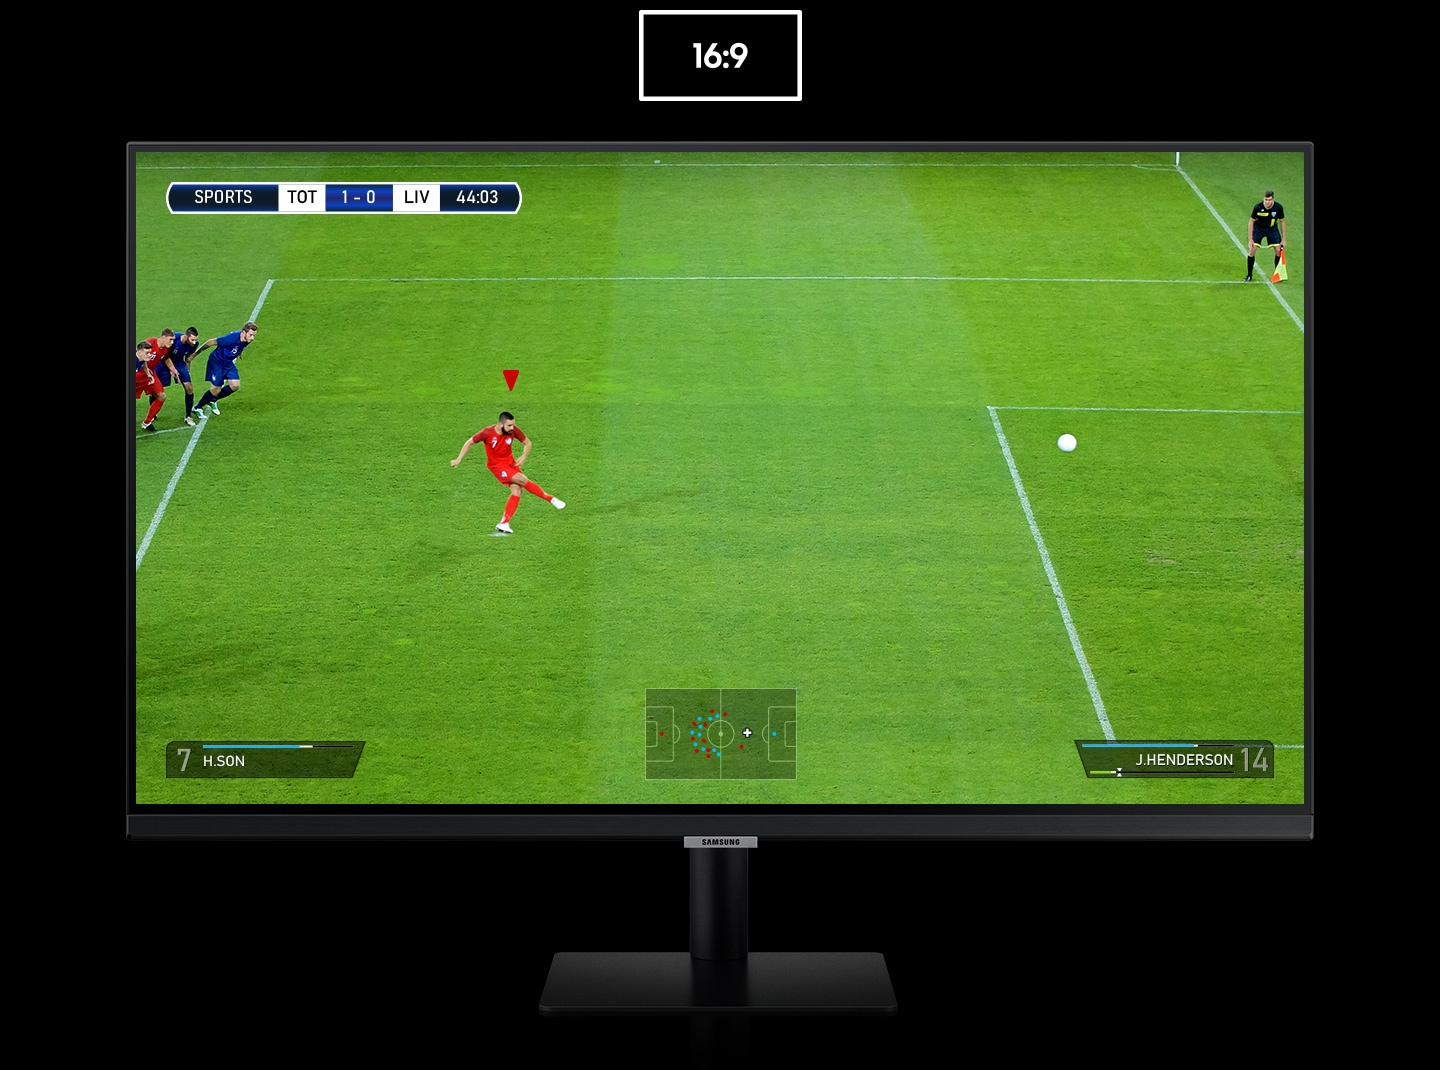 The monitor shows a photo of a penalty kick in a soccer match. As the 16:9 ratio display transforms to 21:9, the goalkeeper on the right and other players behind the kicker on the left are revealed. The additional view on each side highlighted by dotted lines.